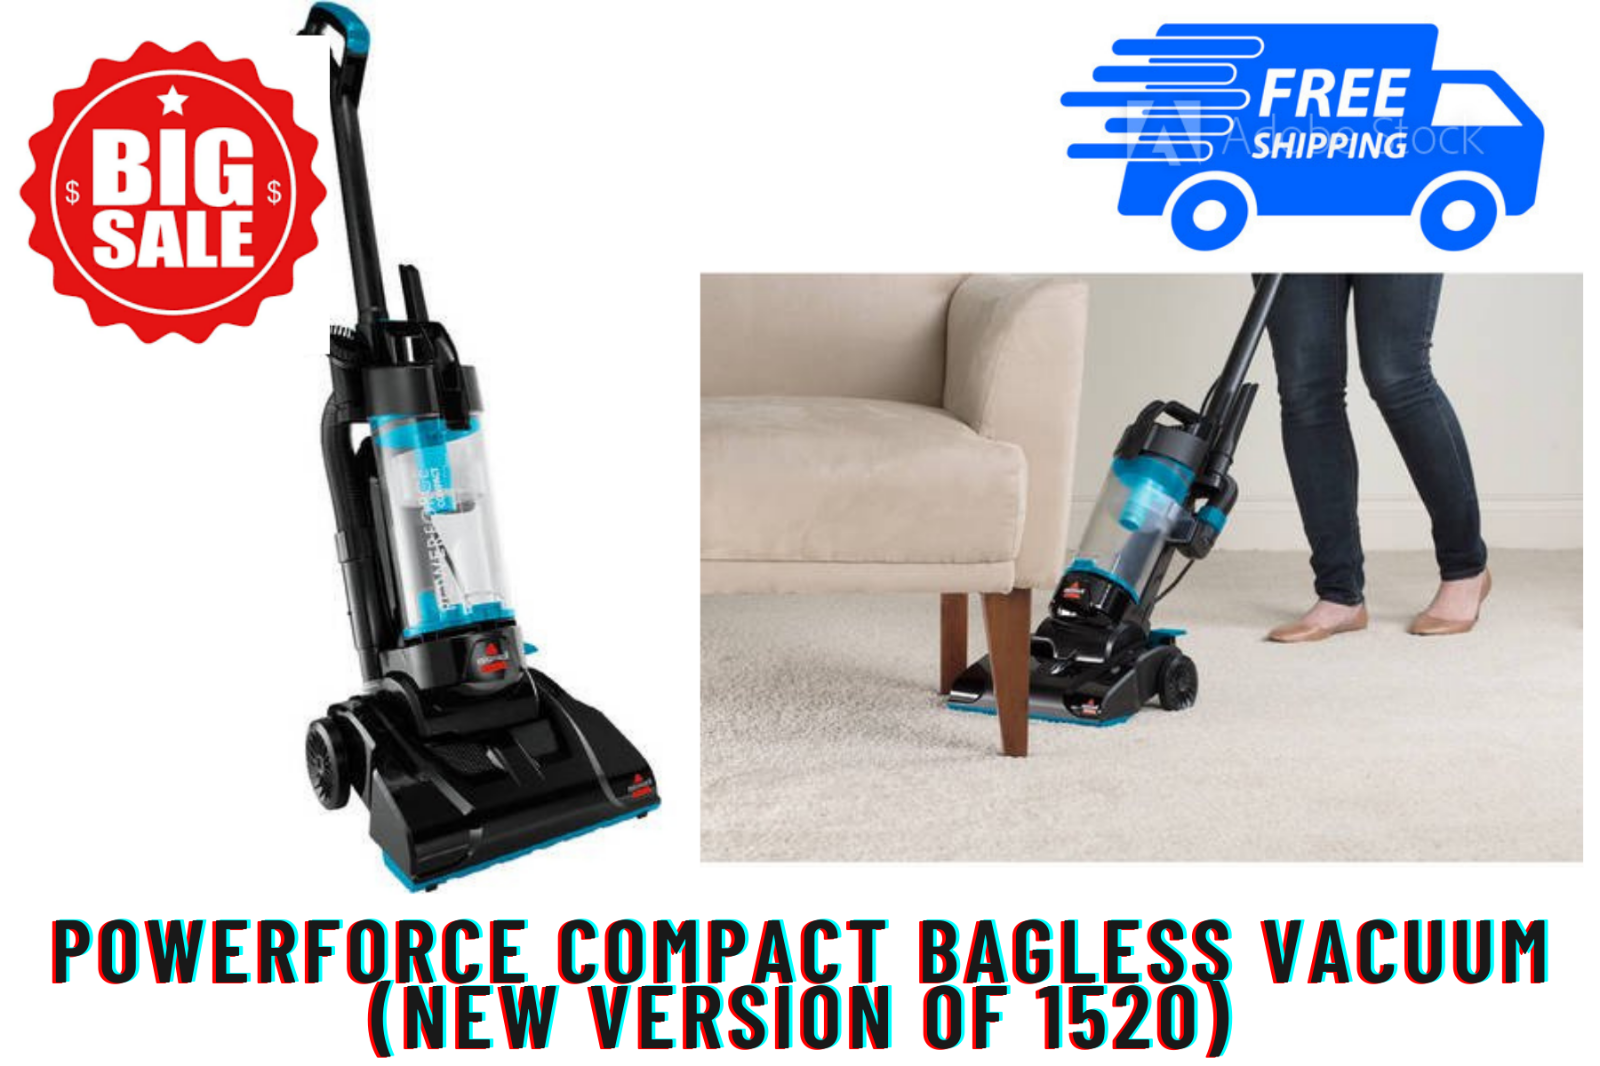 PowerForce Compact Bagless Vacuum Bagless Cyclonic Technoly